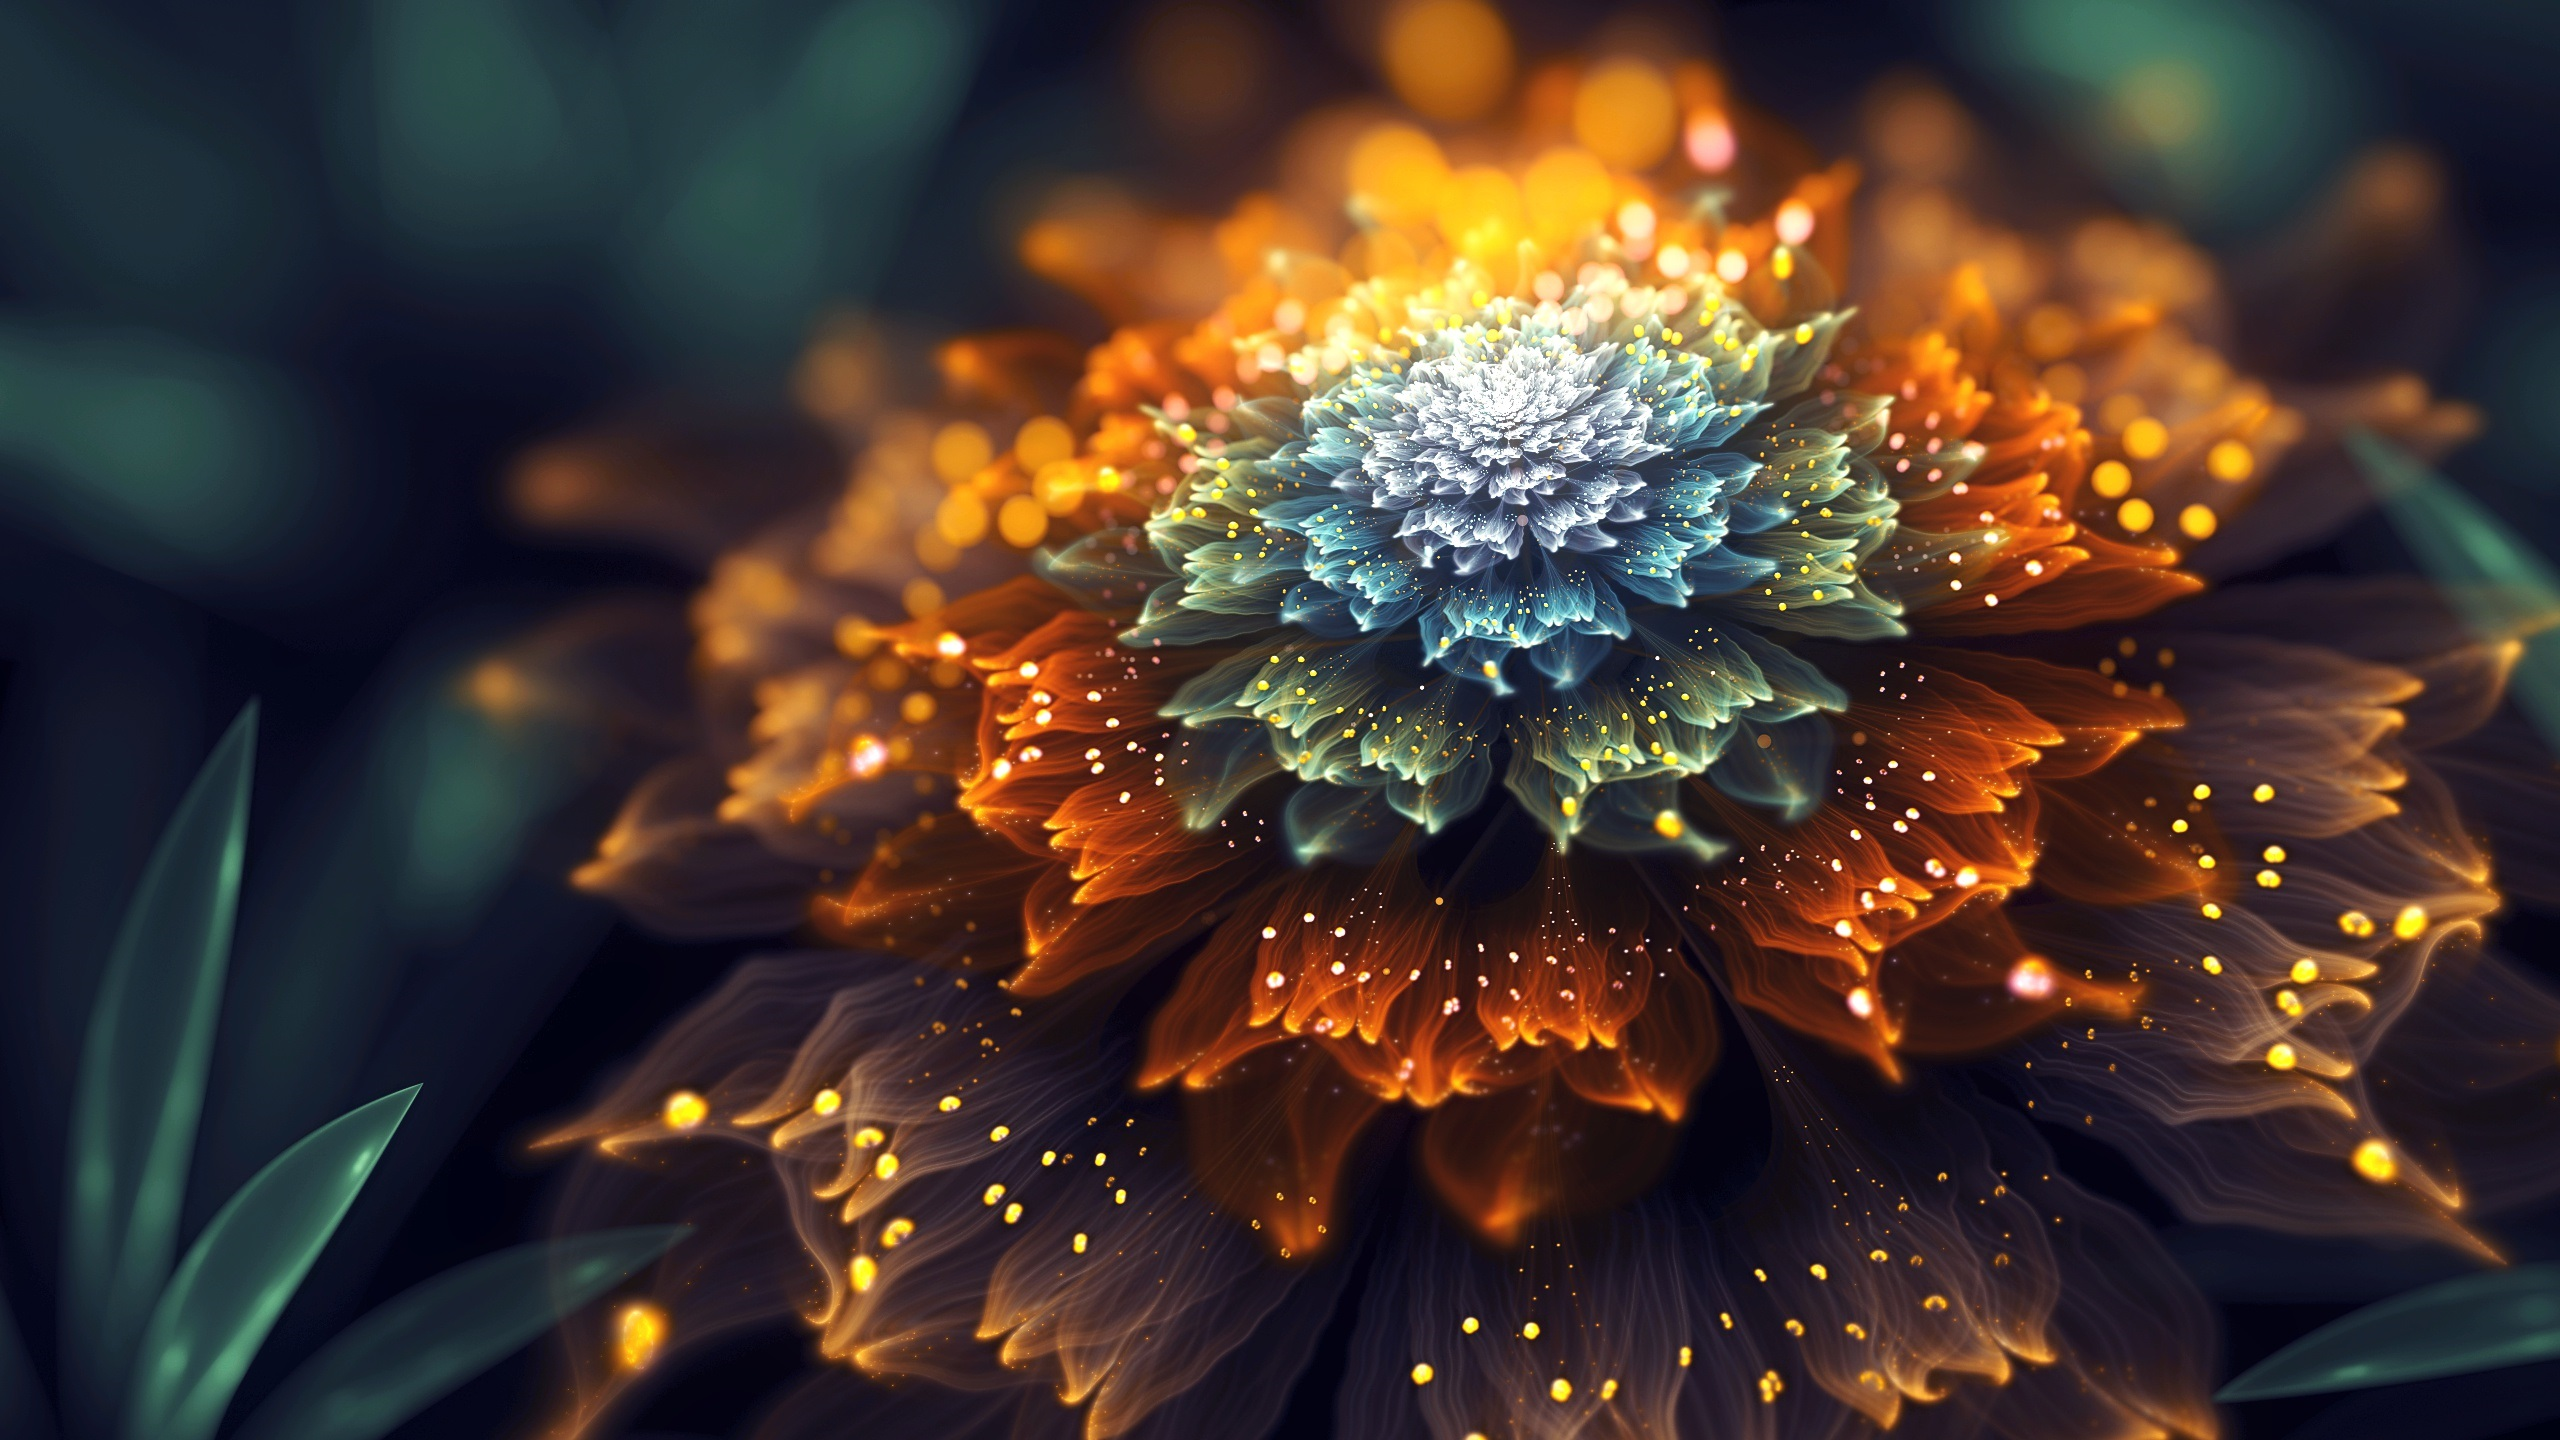 Wallpaper Abstract Flower Orange And Blue Petals Shine 2560x1440 Qhd Picture Image